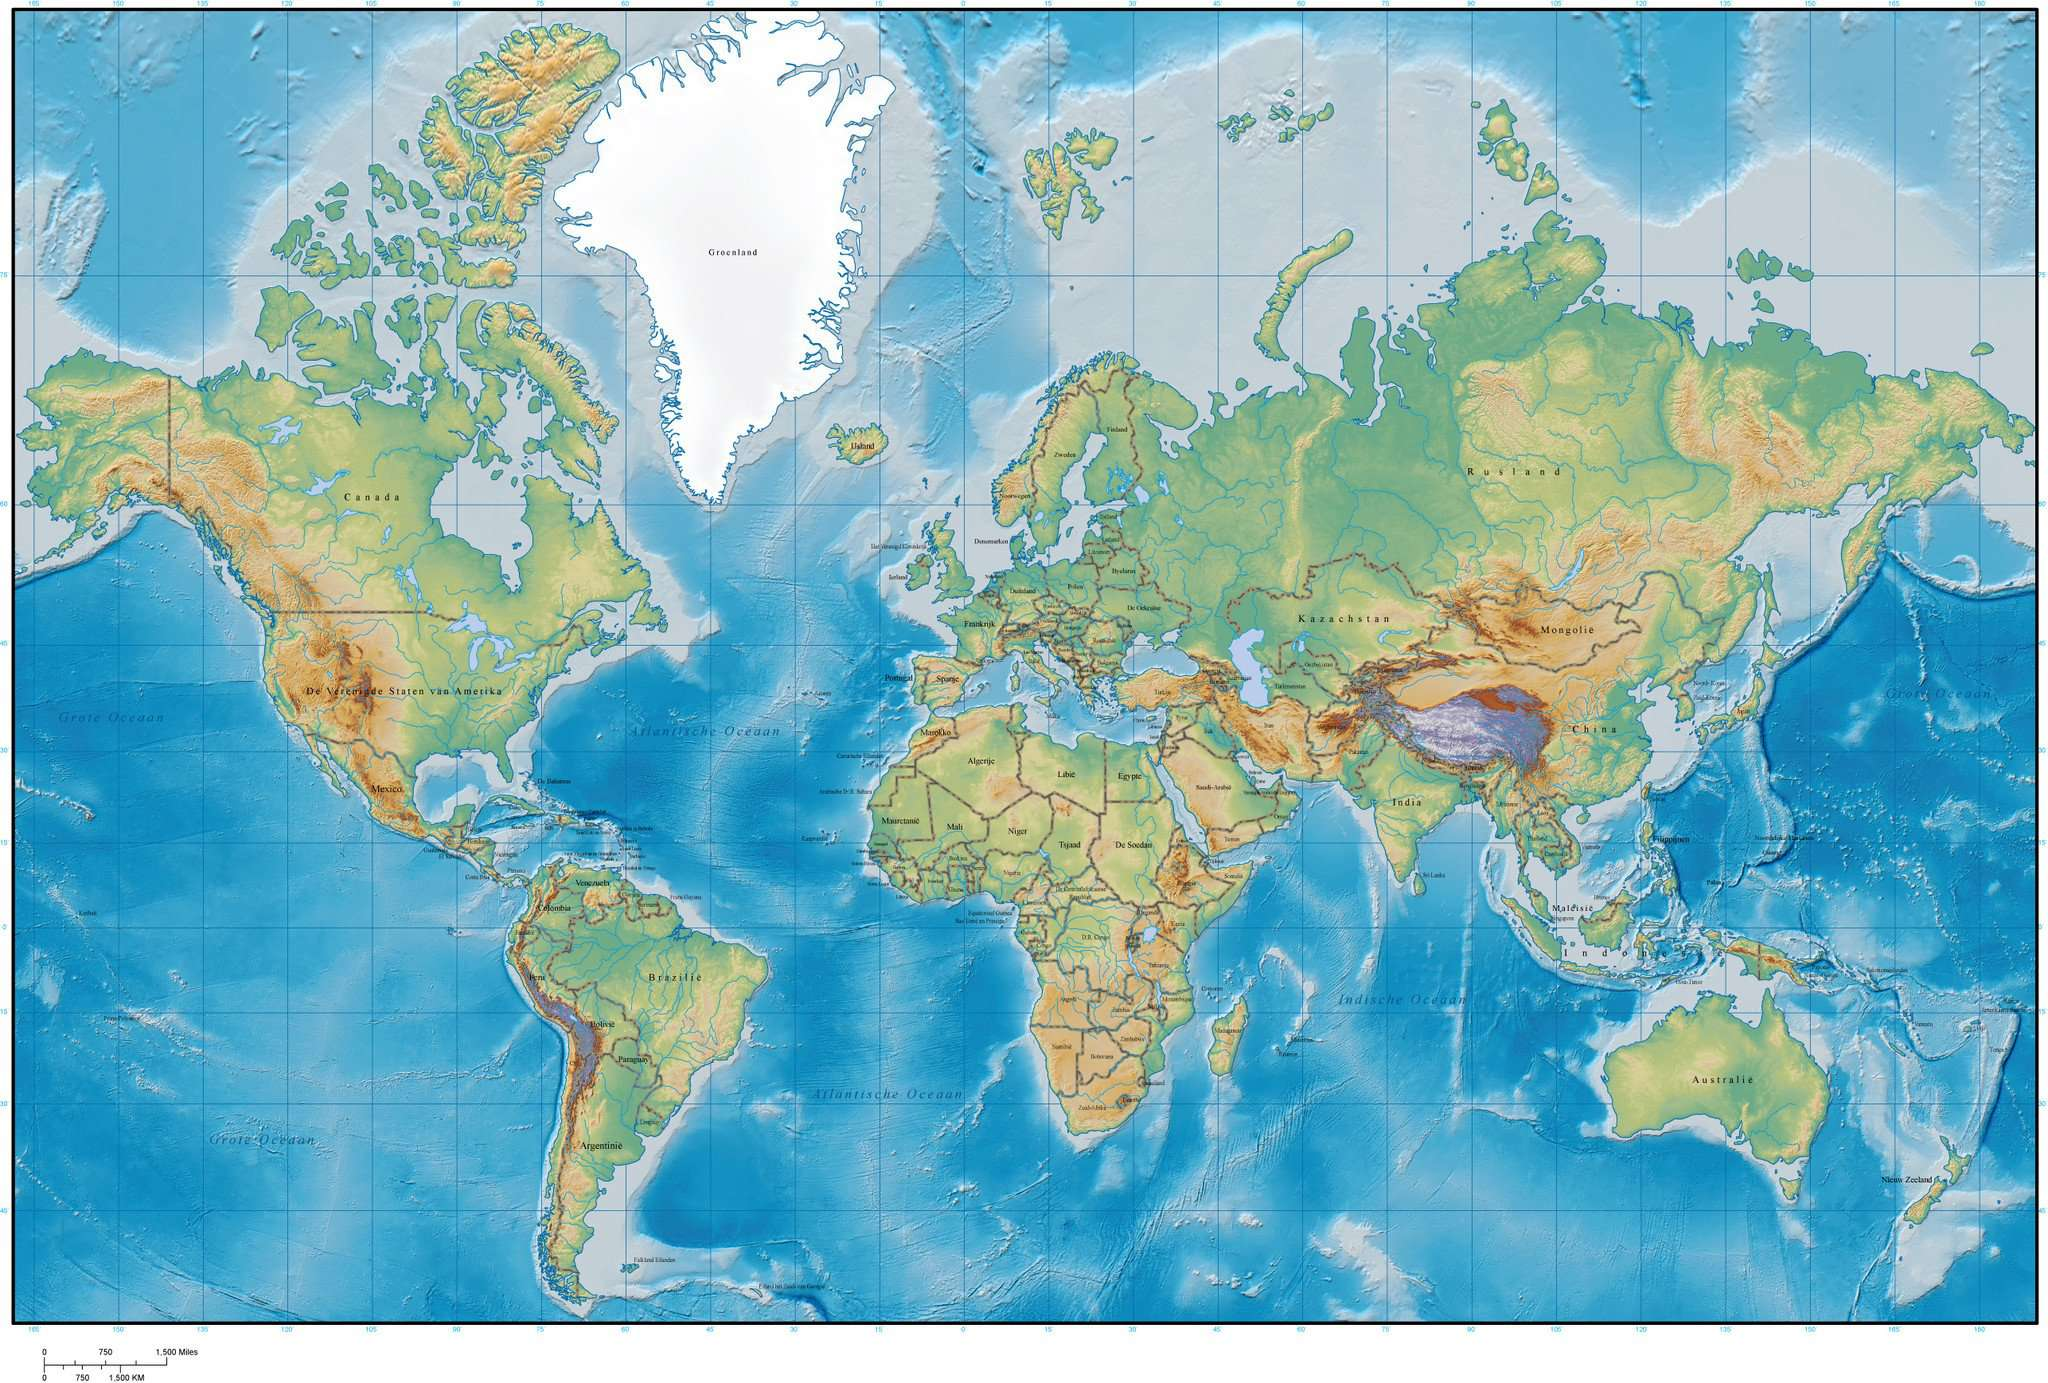 World Map with Land and Ocean Floor Terrain and Country Names in Dutch